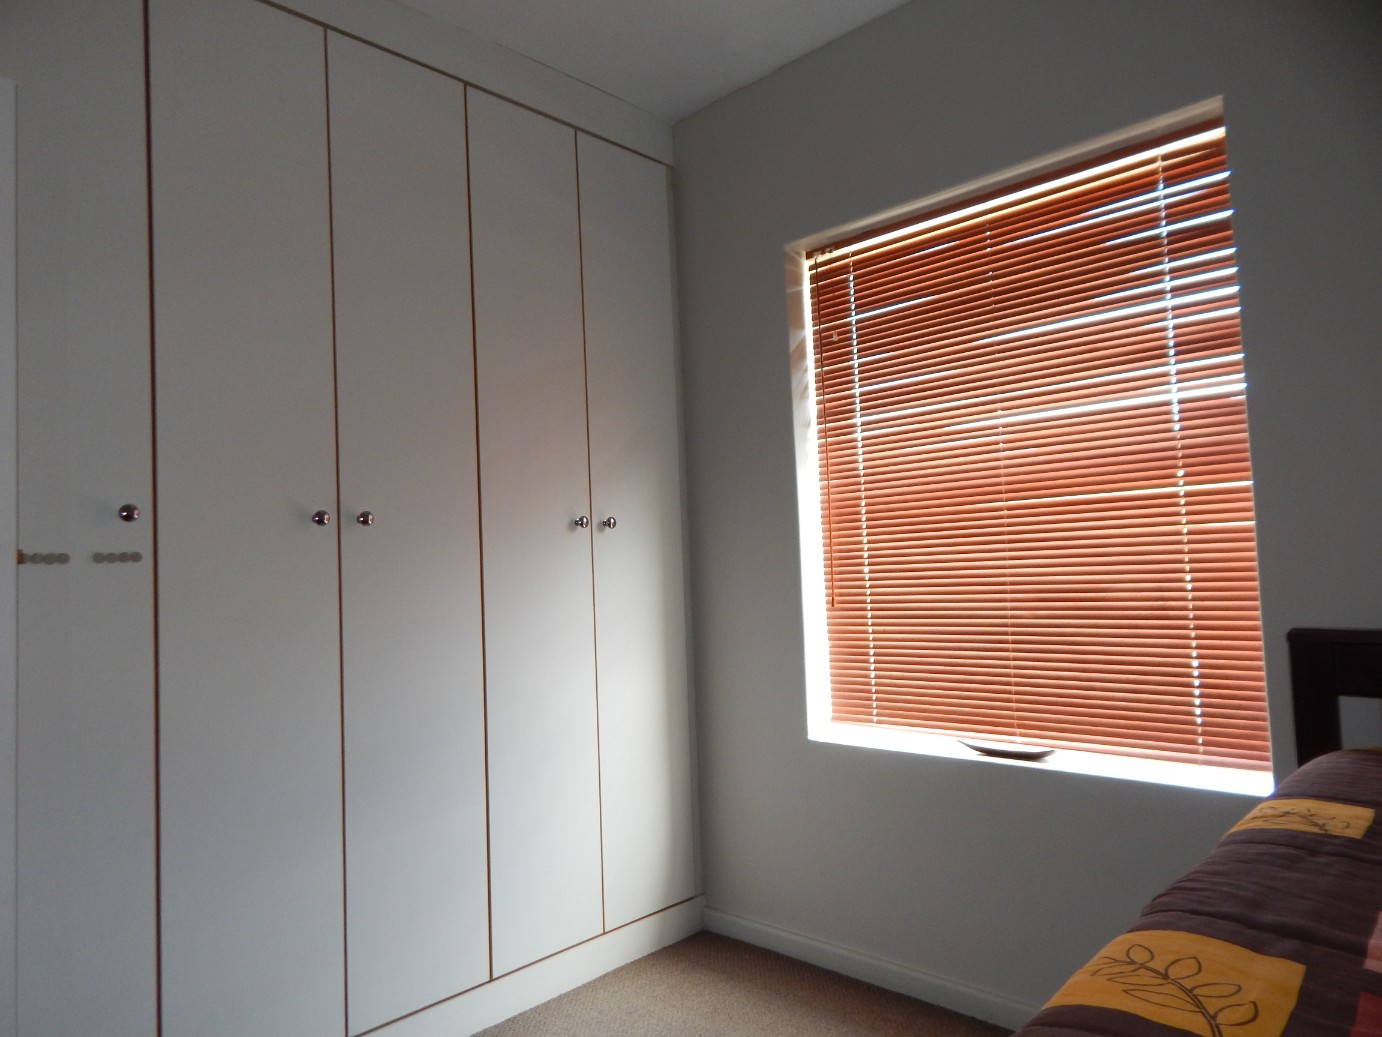 3 Bedroom Apartment for sale in Diaz Beach ENT0080239 : photo#17